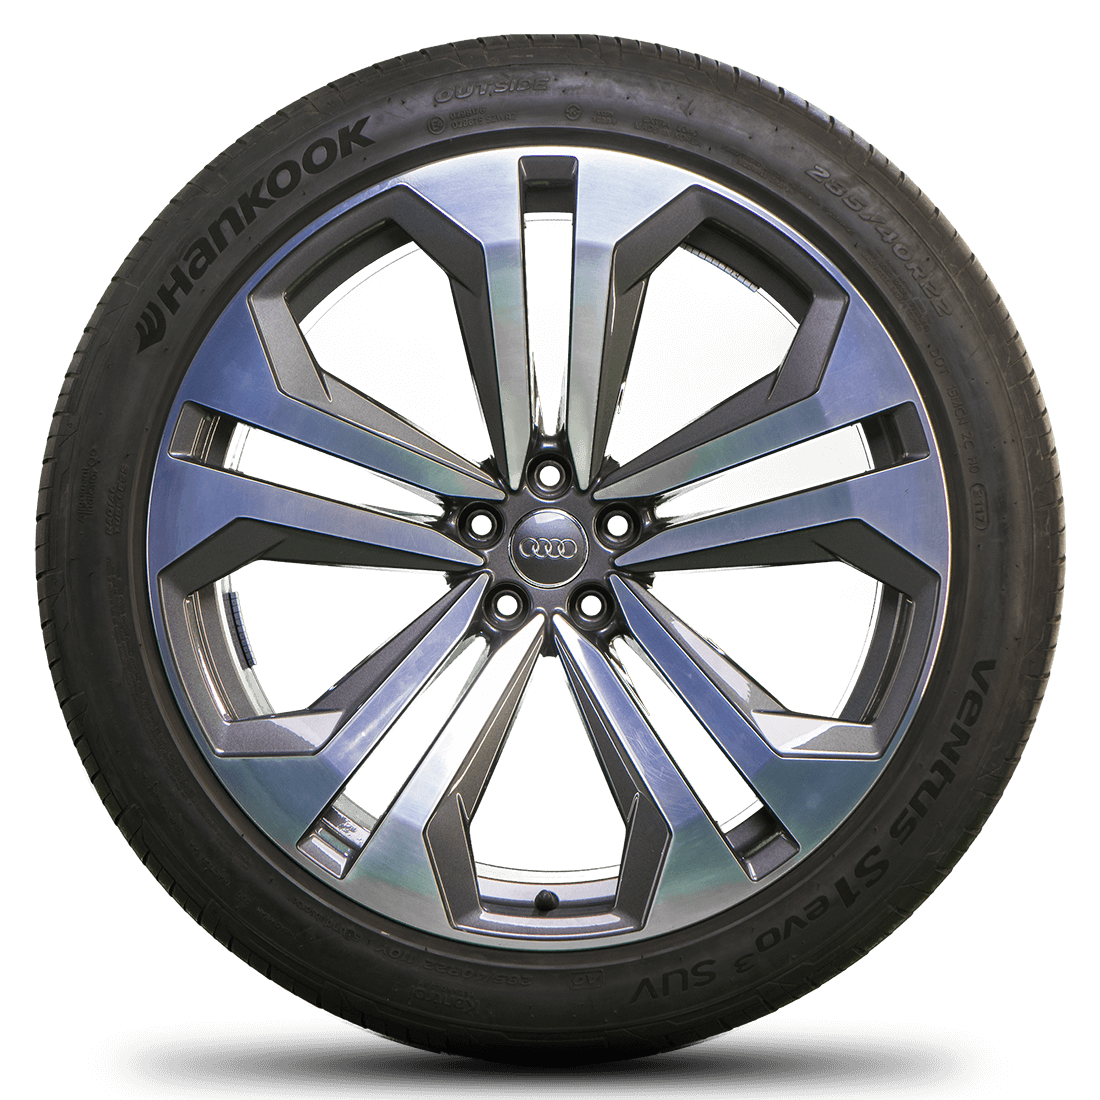 22 Inch Tires >> Original Audi 22 Inch Rims Q8 Alloy Rims Summer Tires Summer Wheels 4m8601025k